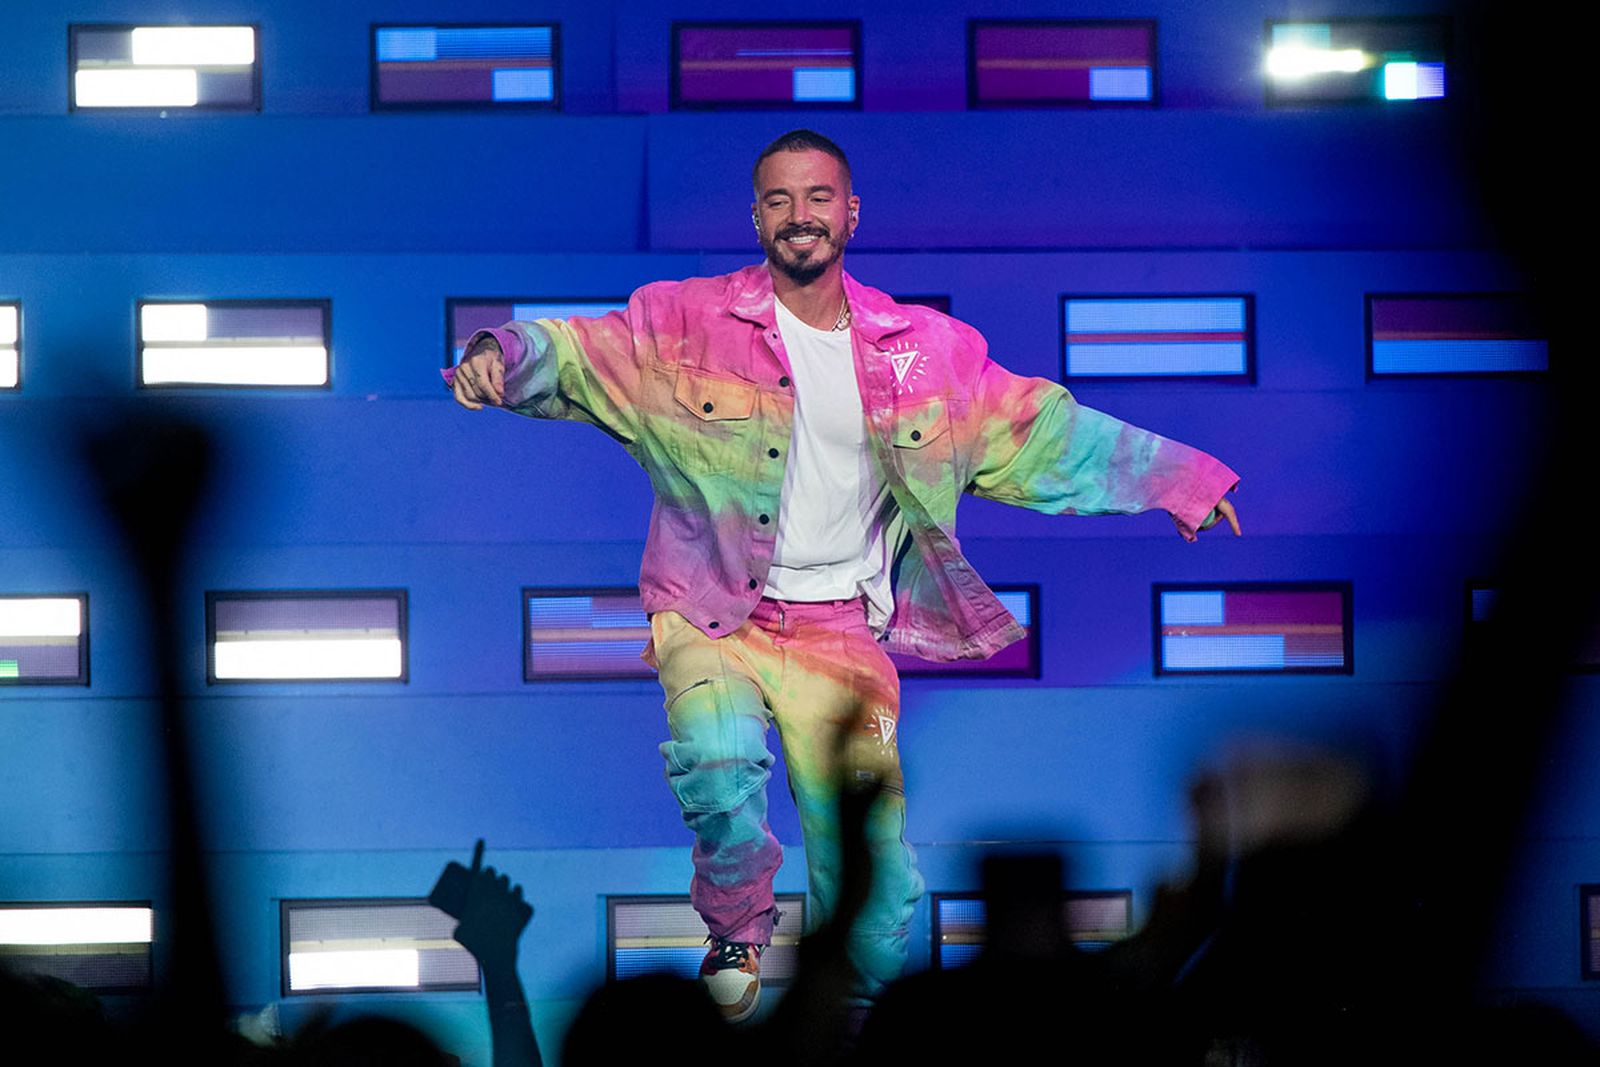 J Balvin performs onstage at Staples Center